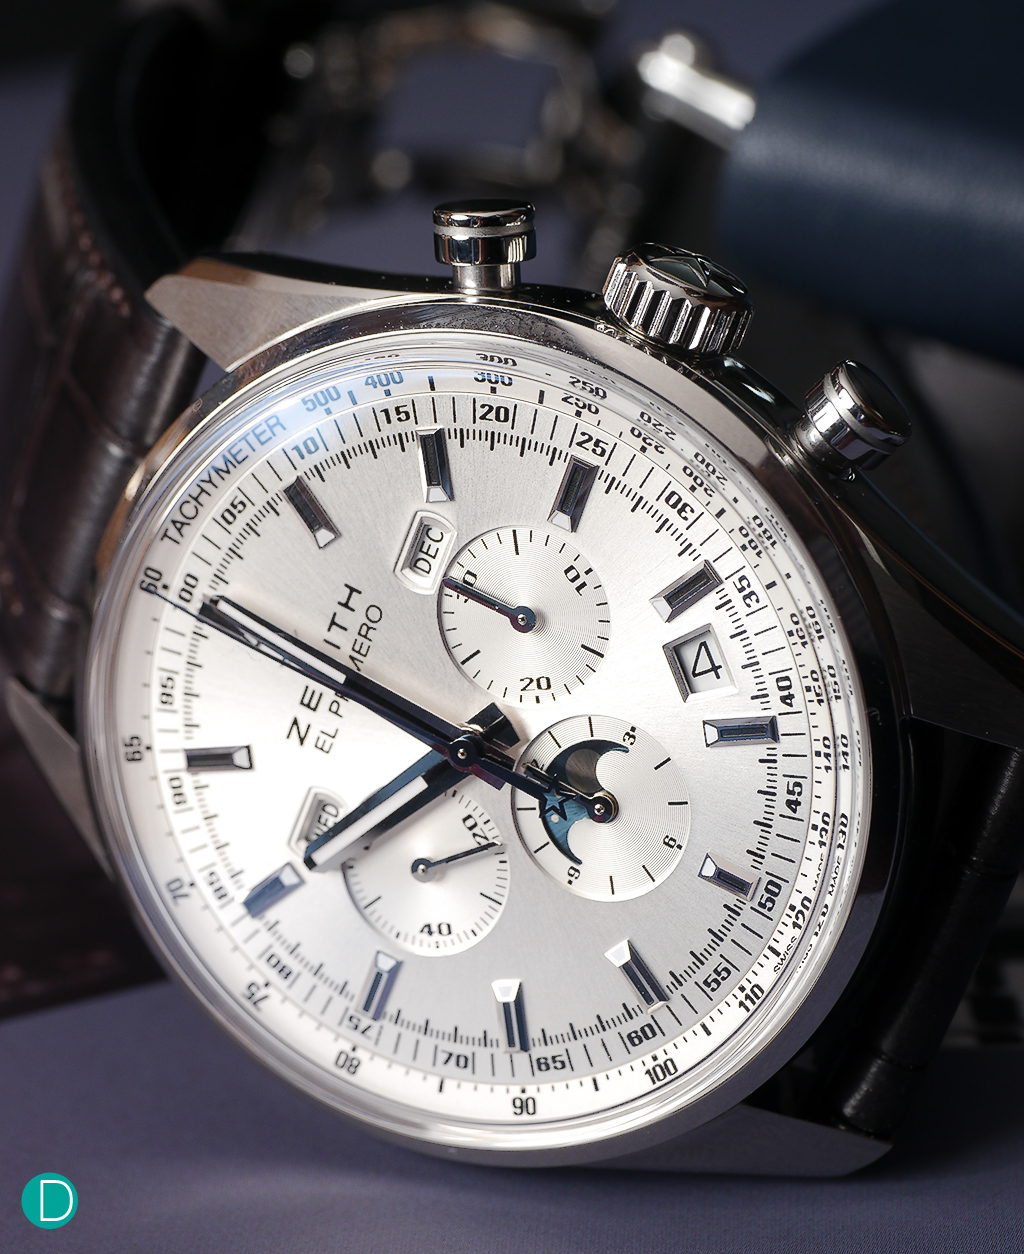 The Zenith El Primero. Probably one of the most iconic pieces in the Zenith lineup.